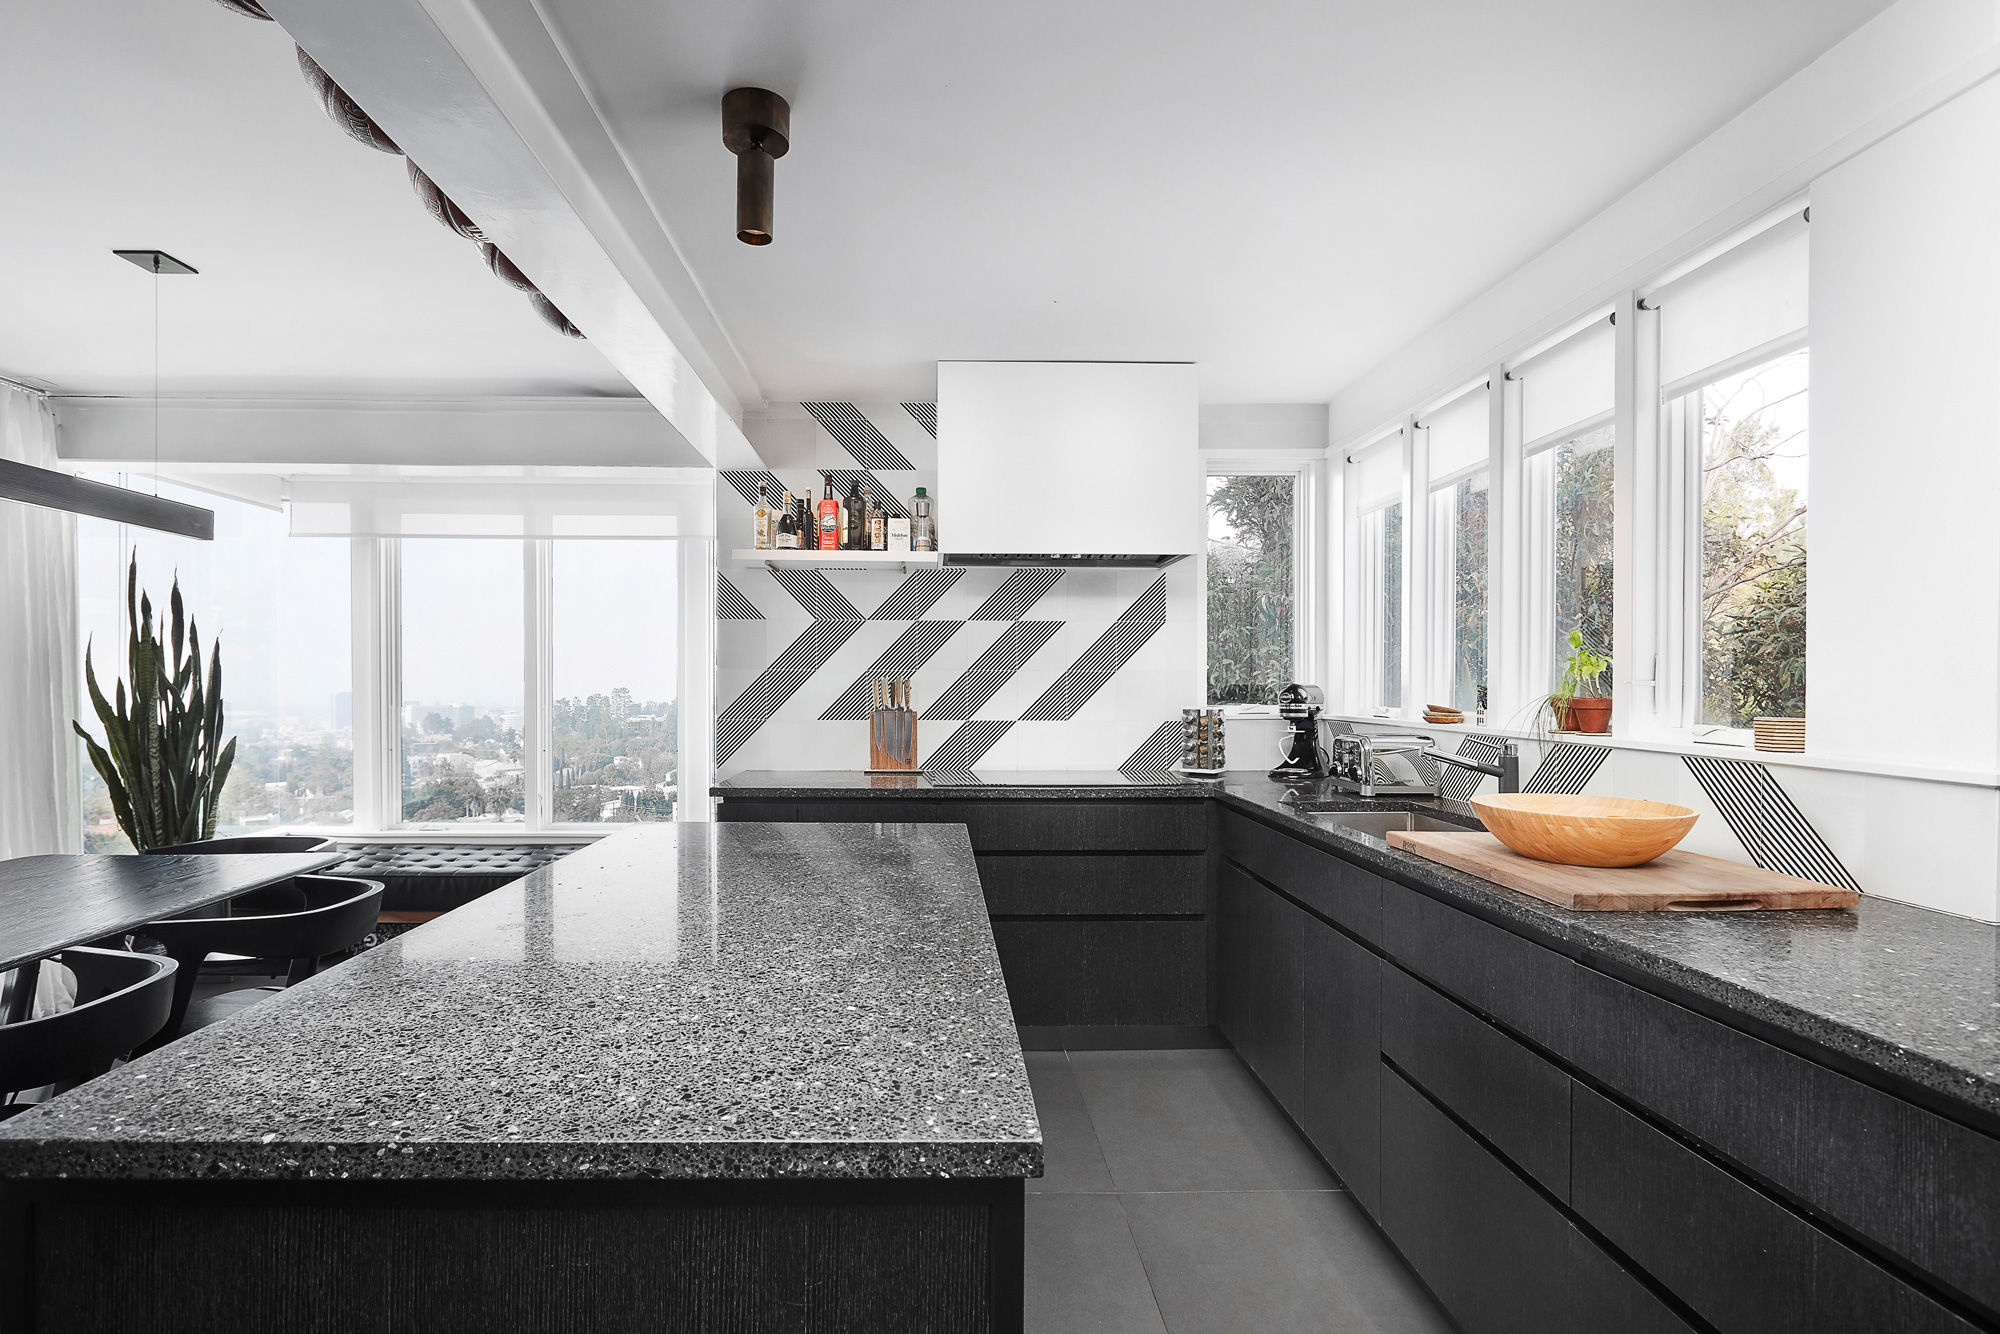 Beachwood_Kitchen-02.jpg